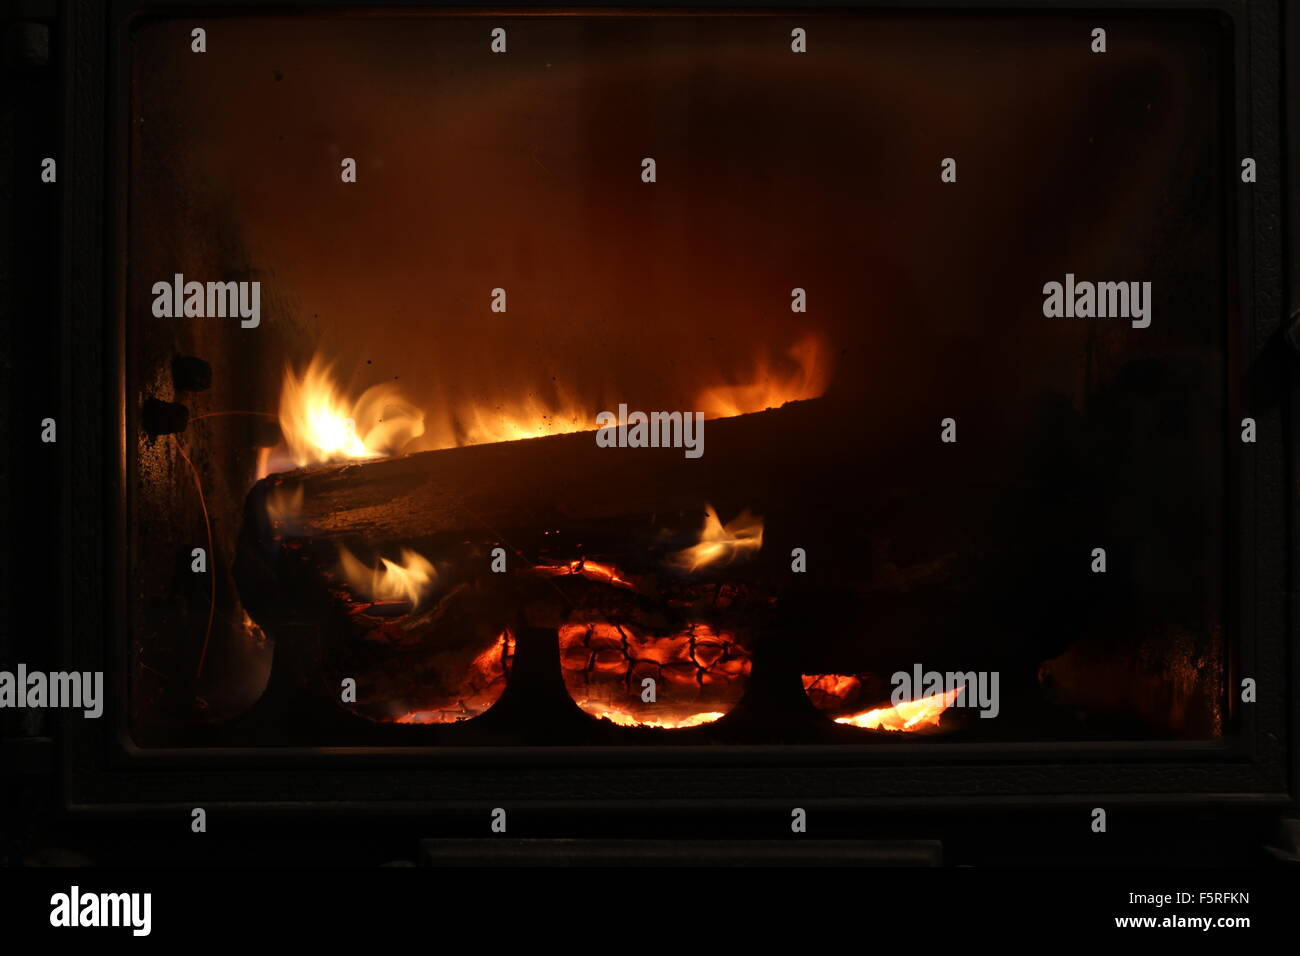 Fire behind the fire screen - Stock Image